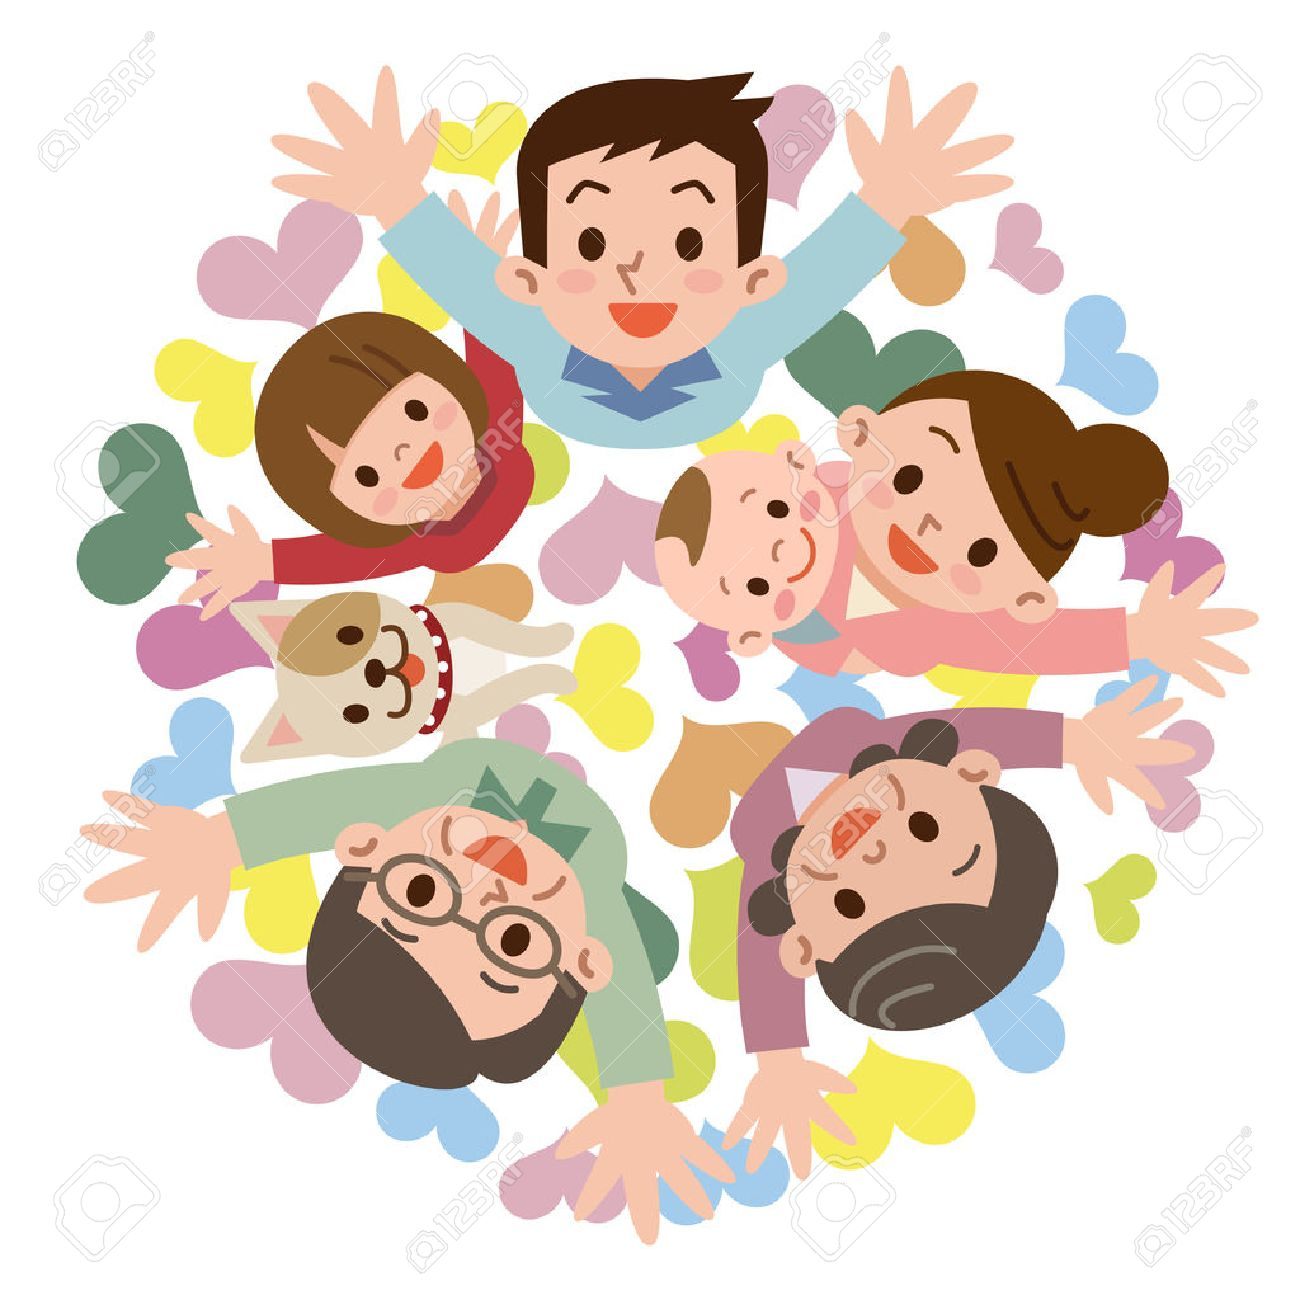 smile of a happy family royalty free cliparts vectors and stock